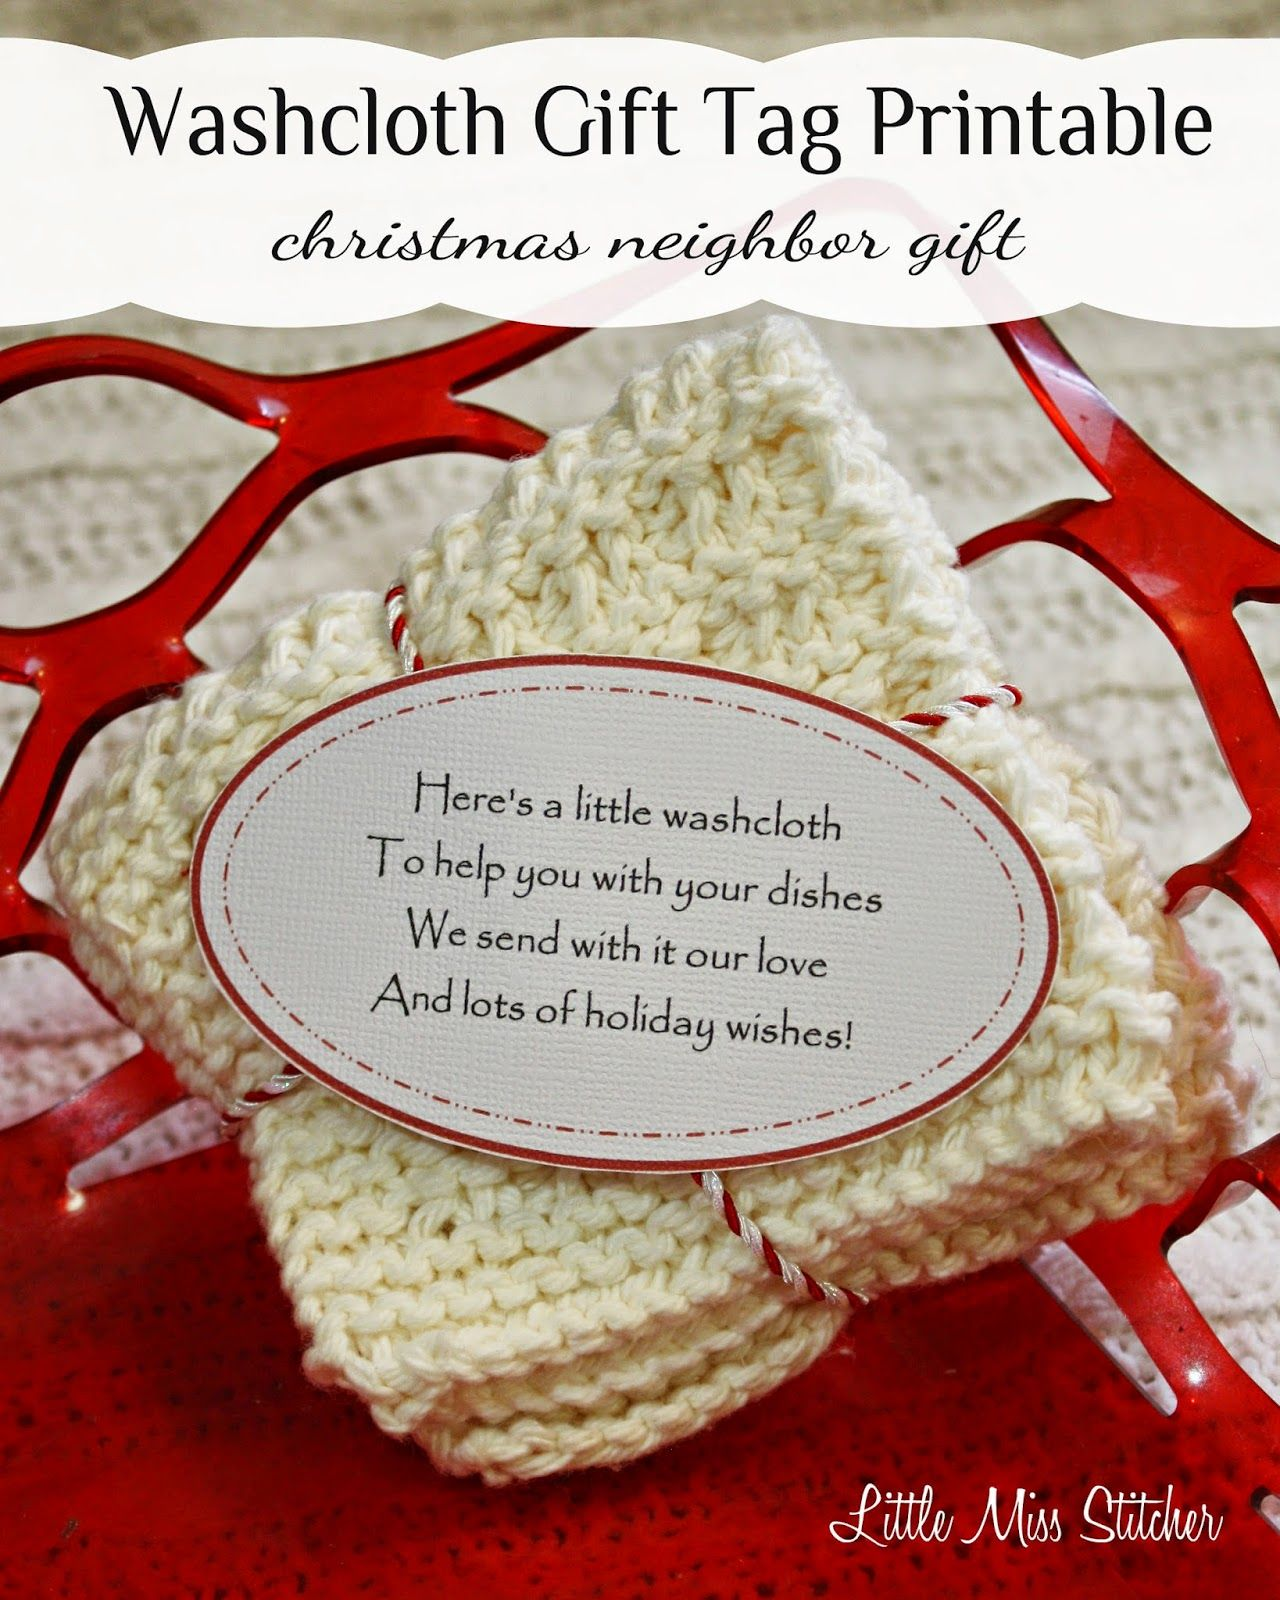 Washcloth Gift Idea for Christmas.The cute poem on these free ...